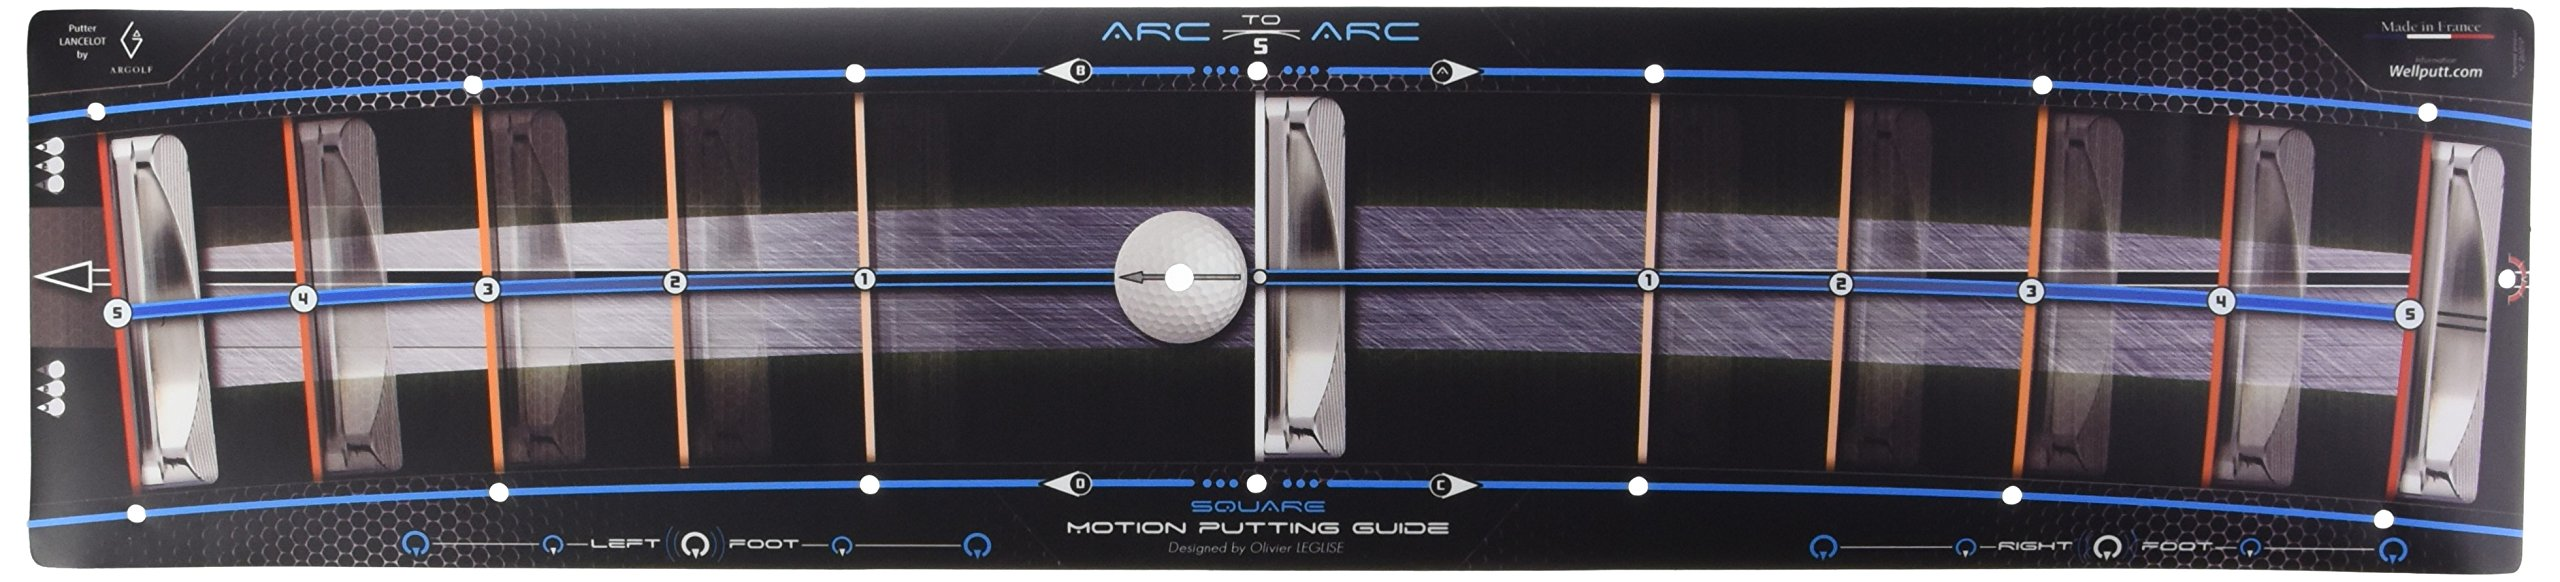 Wellingputt Arc To Arc Golf Training Aid - Square